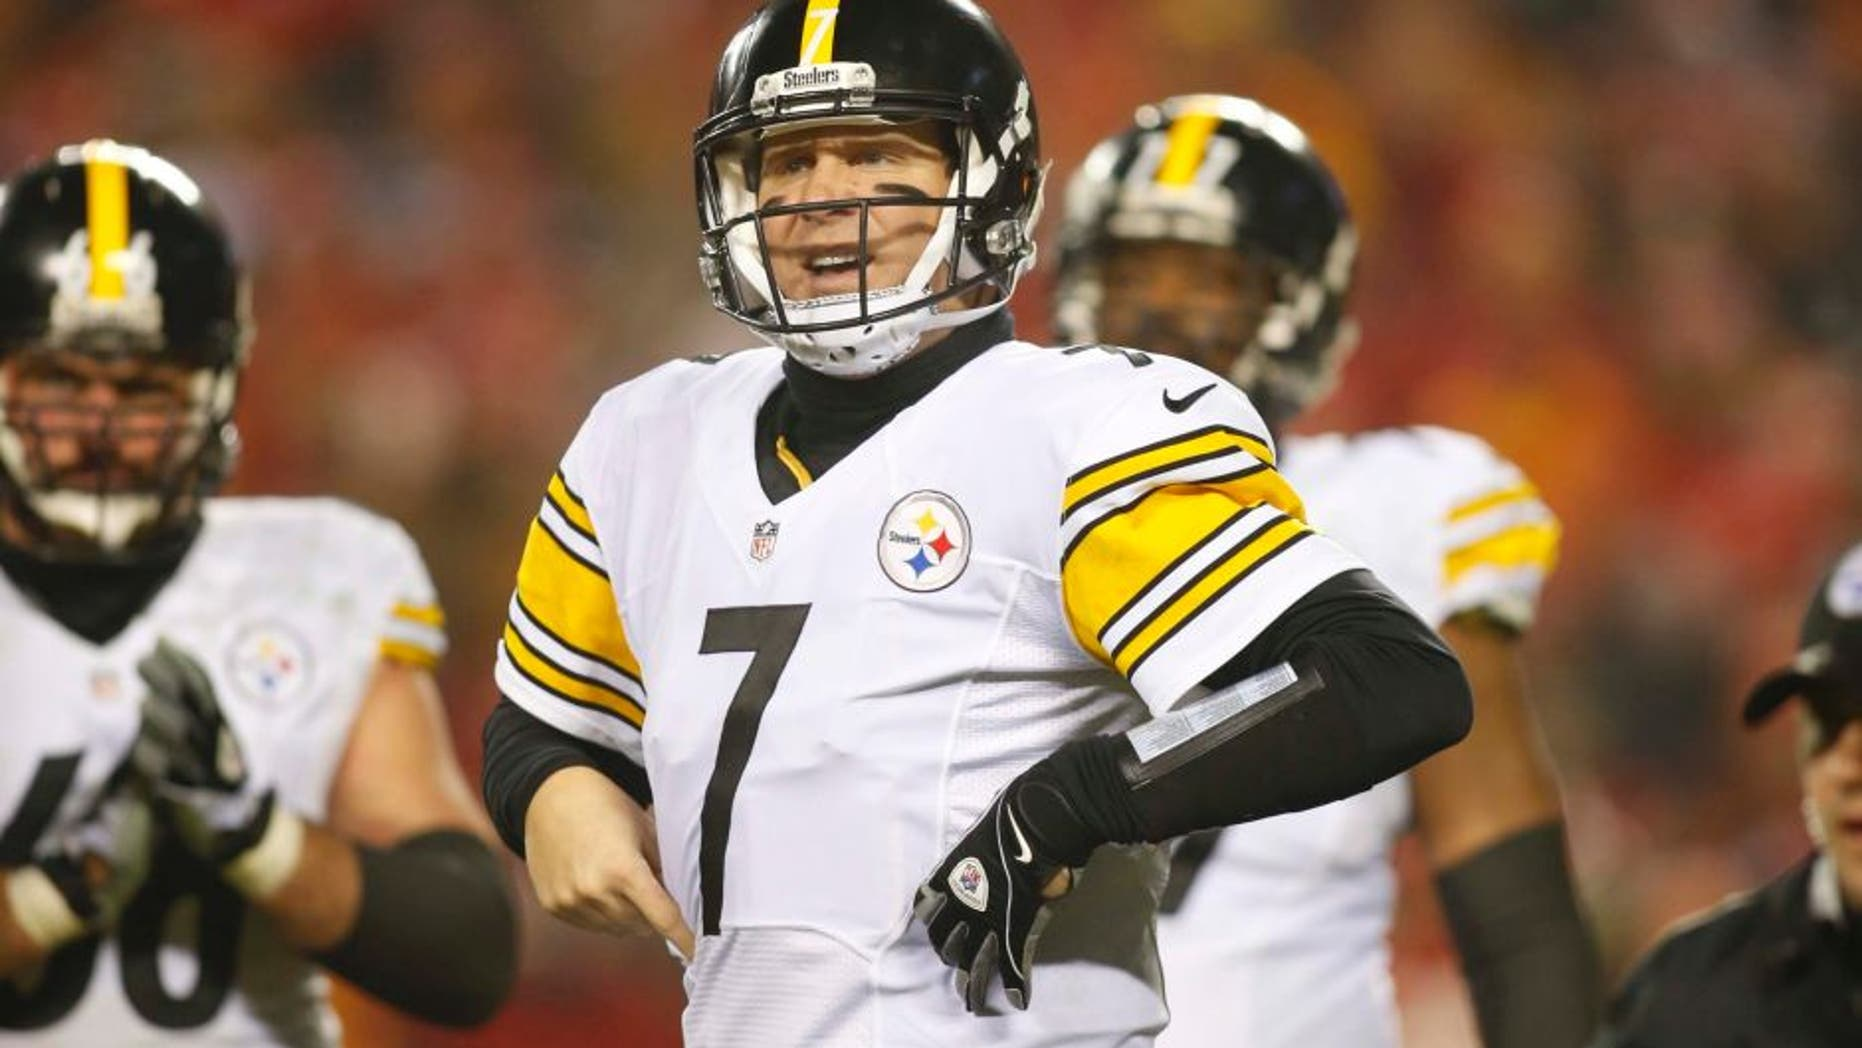 Jan 15, 2017; Kansas City, MO, USA; Pittsburgh Steelers quarterback Ben Roethlisberger (7) motions during the second quarter against the Kansas City Chiefs in the AFC Divisional playoff game at Arrowhead Stadium. Mandatory Credit: Jay Biggerstaff-USA TODAY Sports